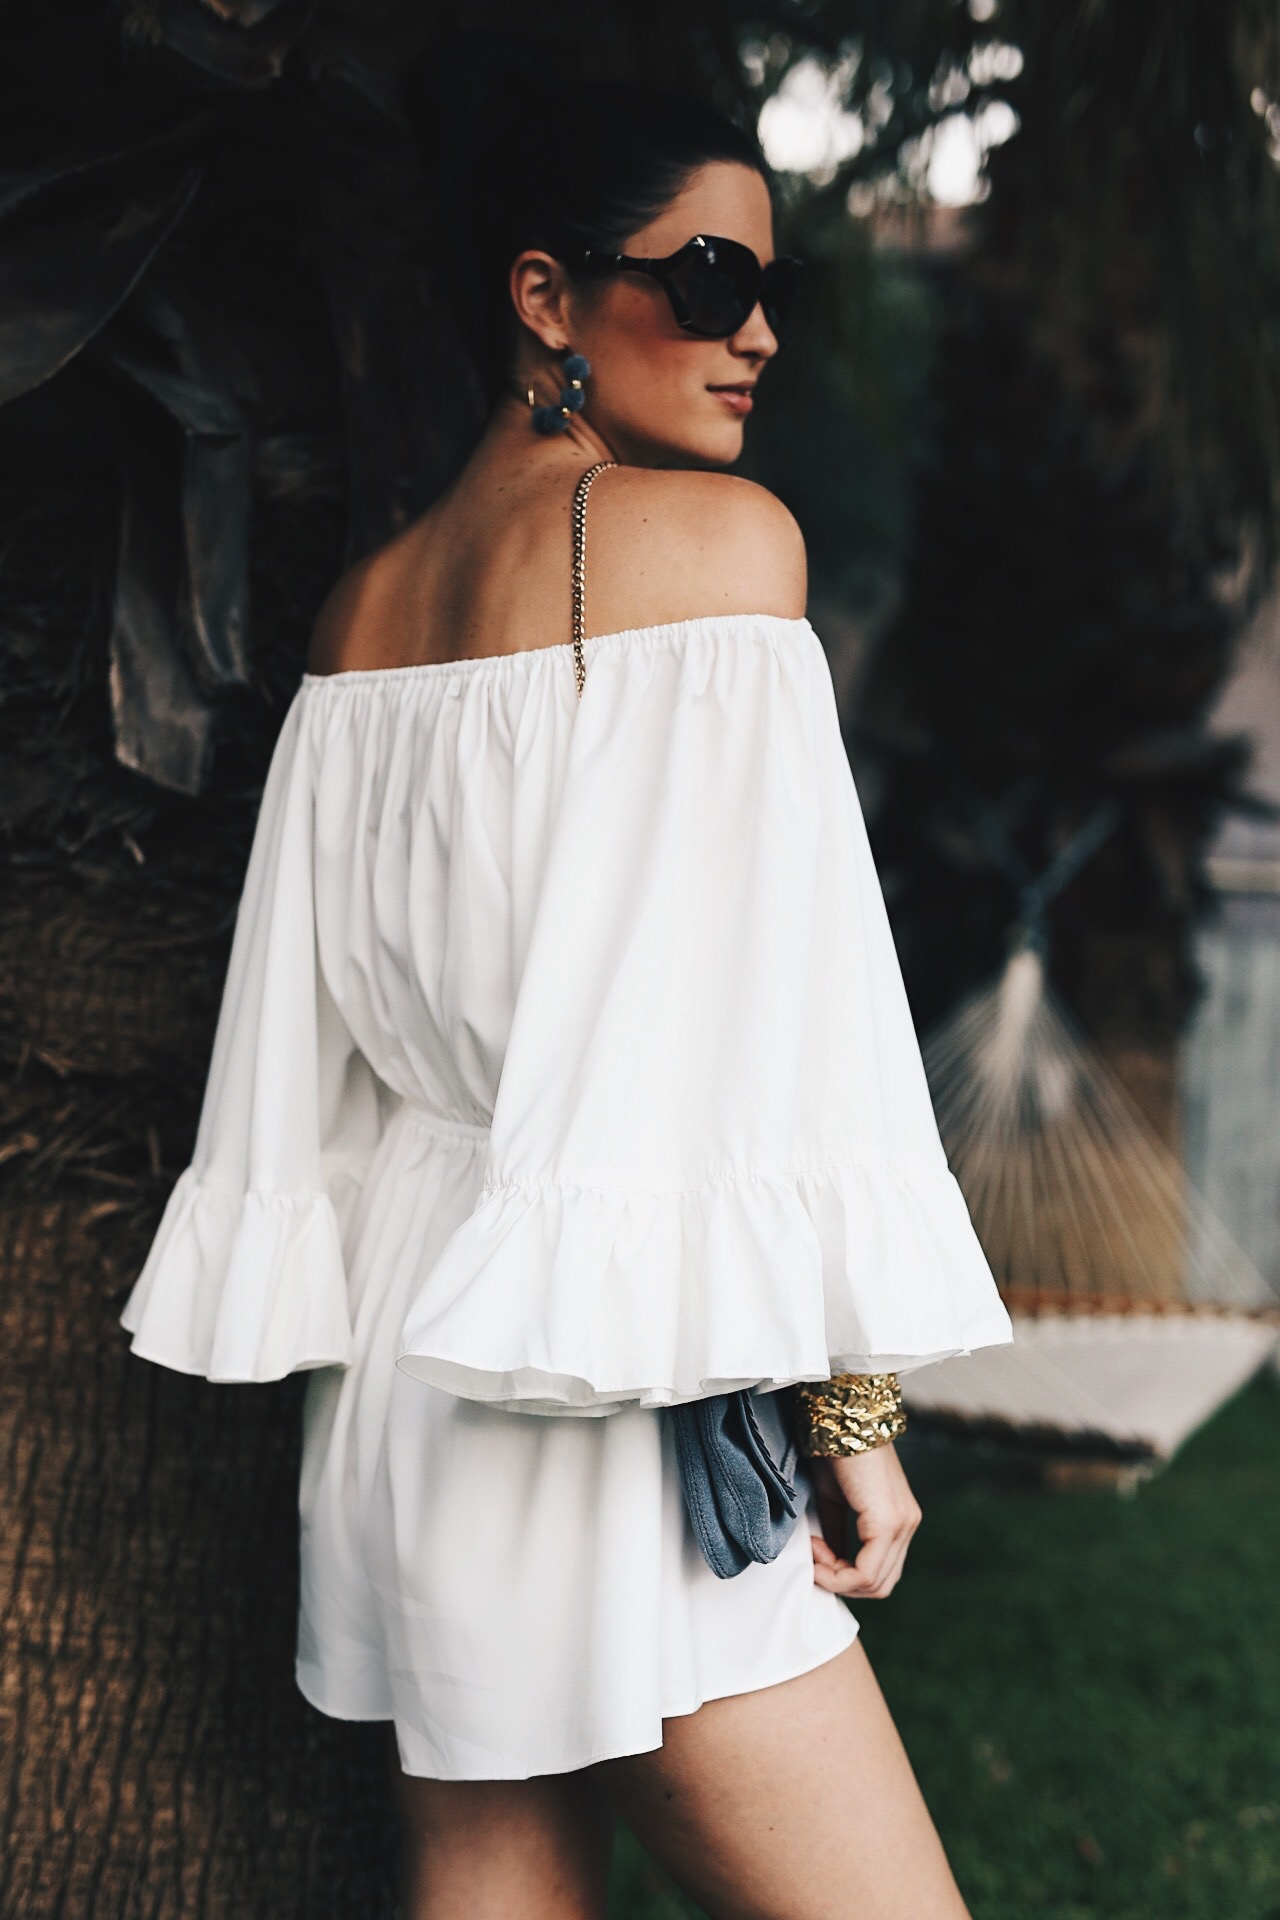 The Best Rompers for a Long Torso   how to wear a romper if you have a long torso   how to style a romper   summer fashion   summer style   dress for summer   what to wear for summer   warm weather fashion   summer fashion tips   summer style ideas   summer outfit ideas    Dressed to Kill